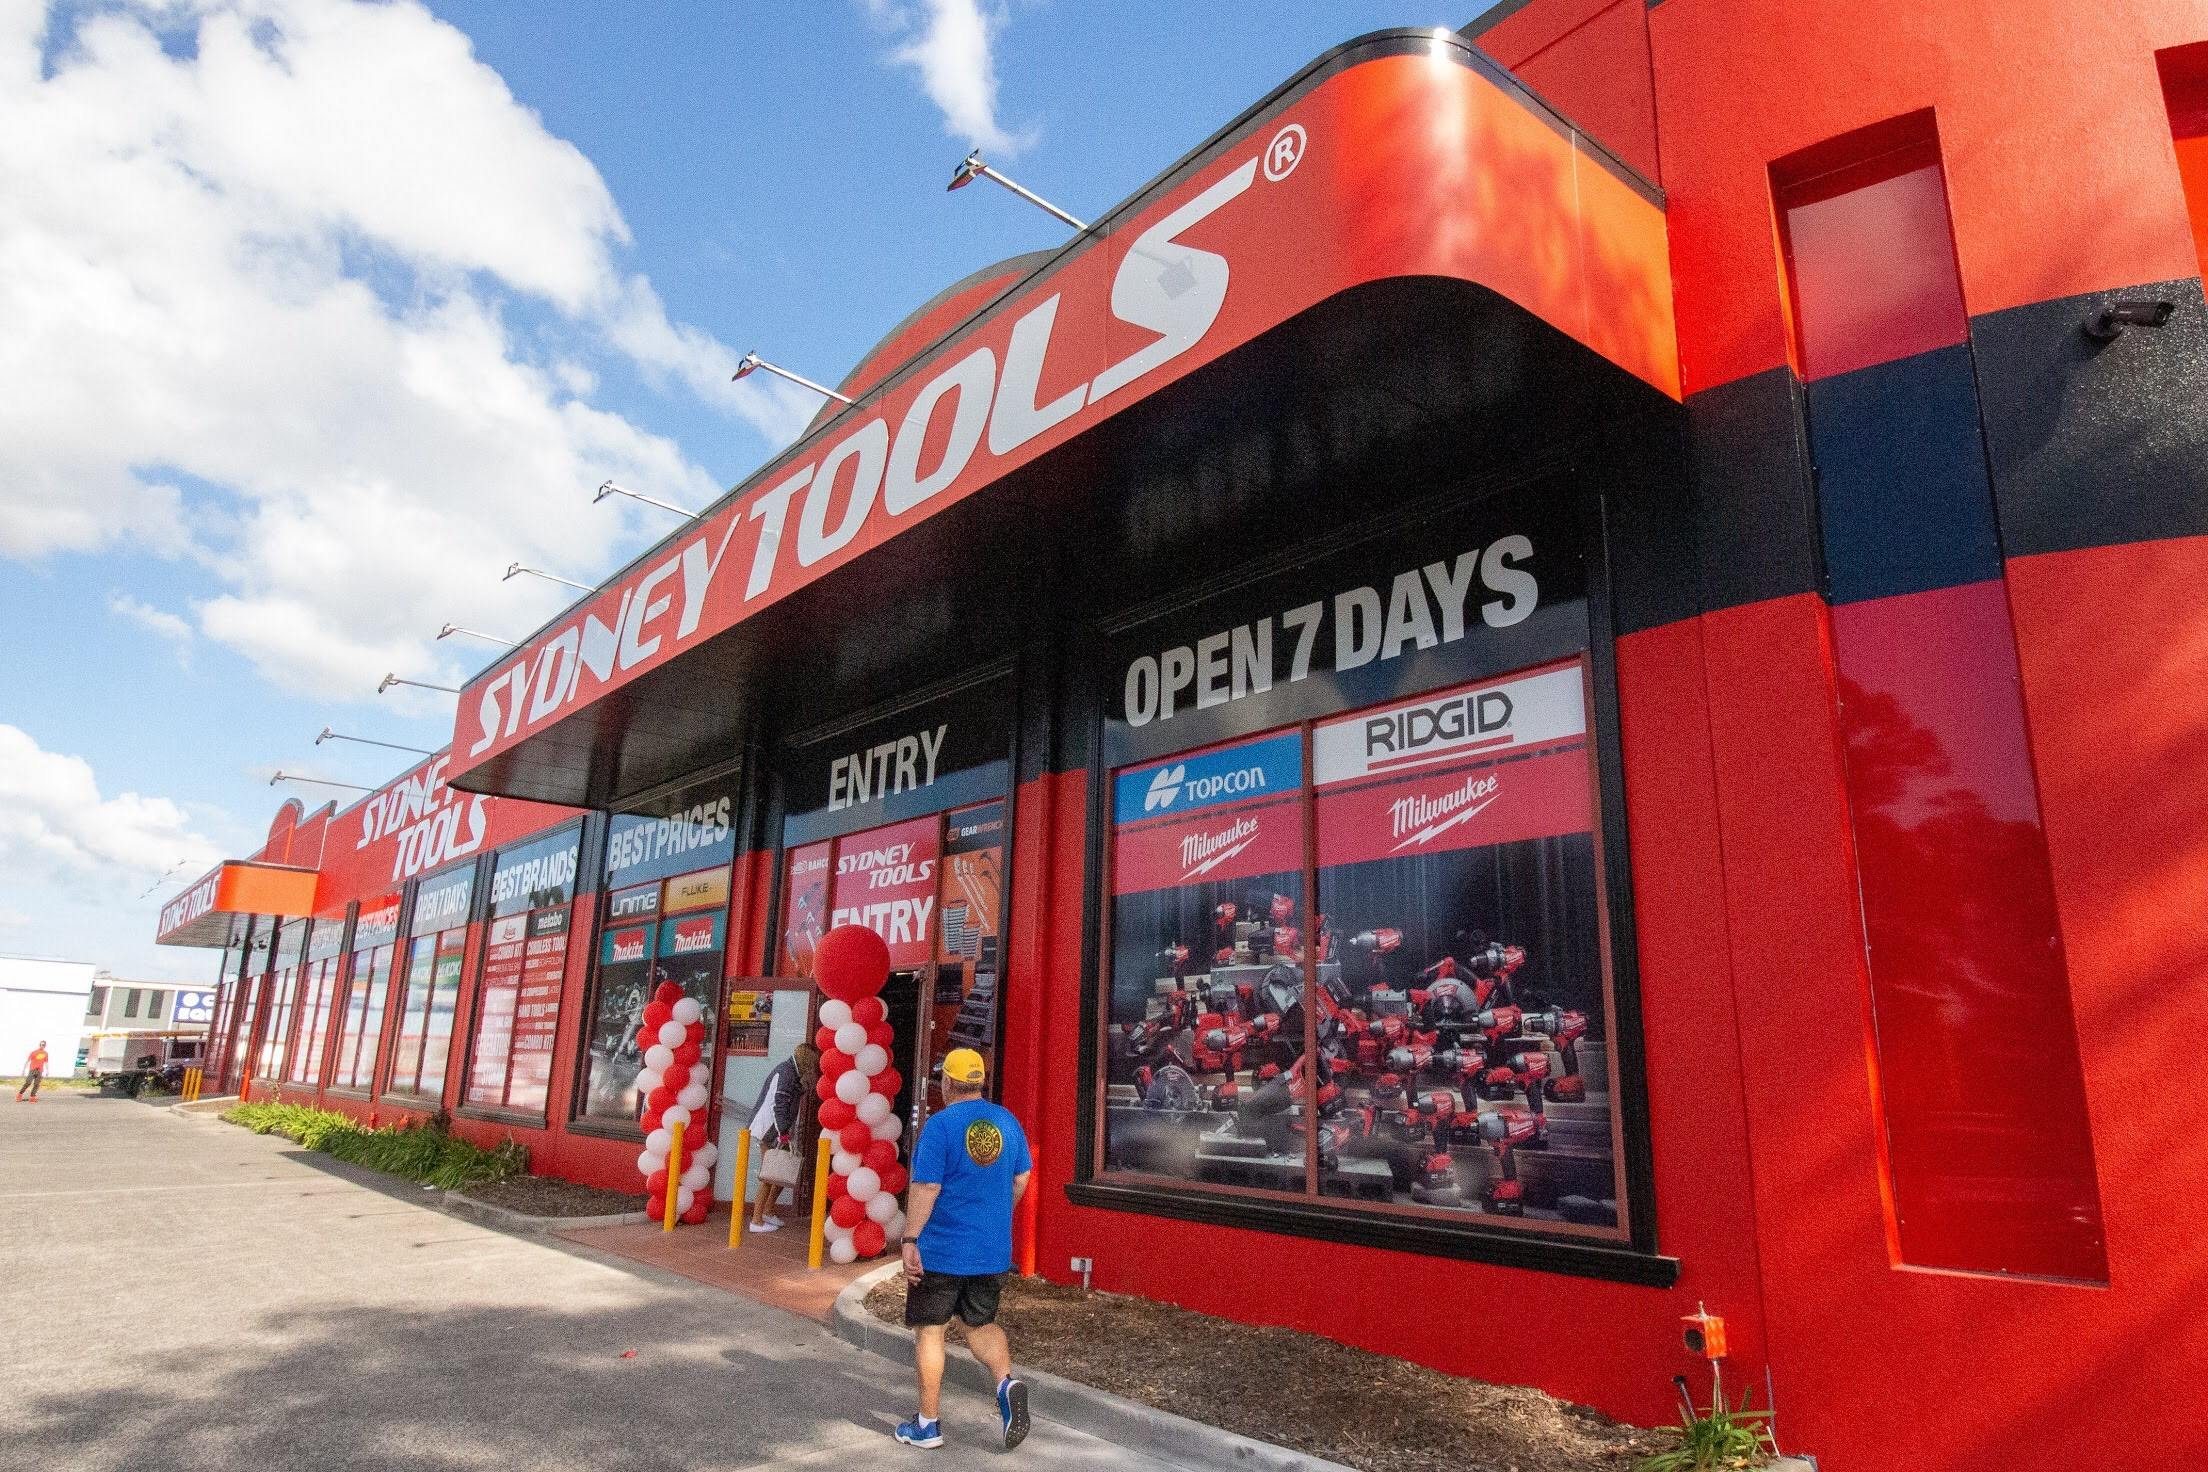 Sydney Tools to open 10 new stores in 2020